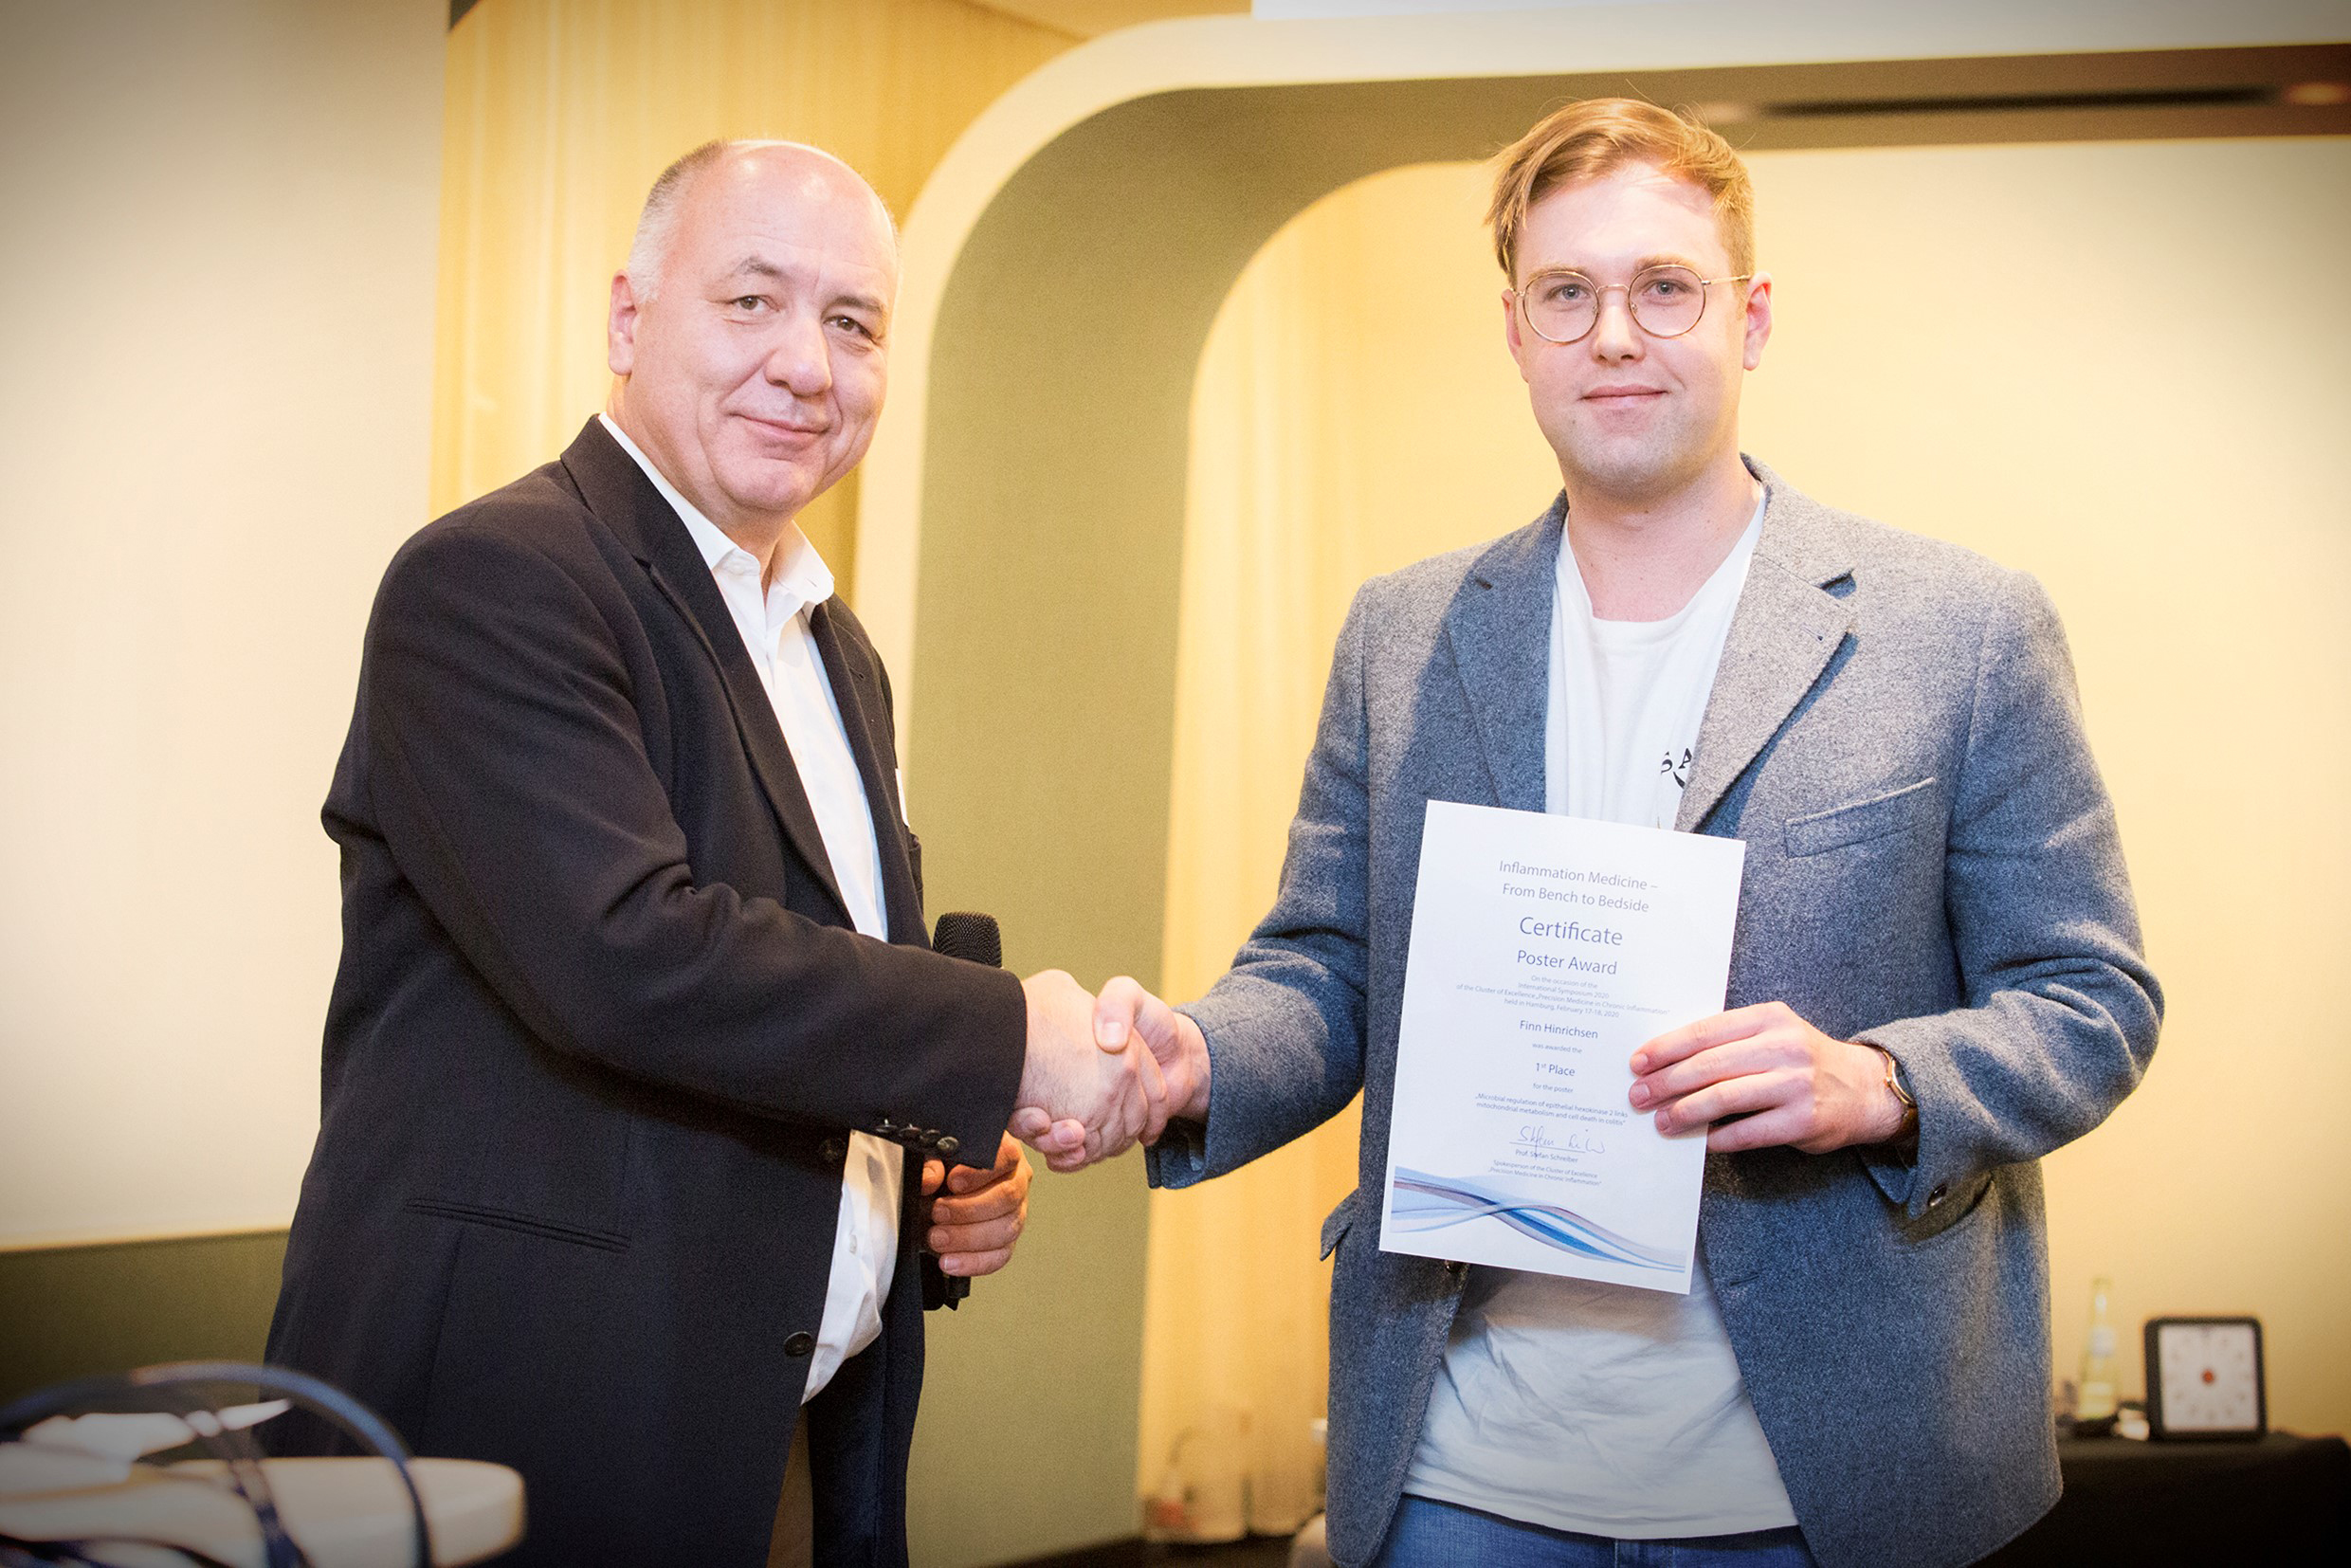 Poster price for Finn Hinrichsen awarded by Prof. Dr. Stefan Schreiber,  photos: C. Kloodt, copyright: Cluster of Excellence PMI, Kiel University